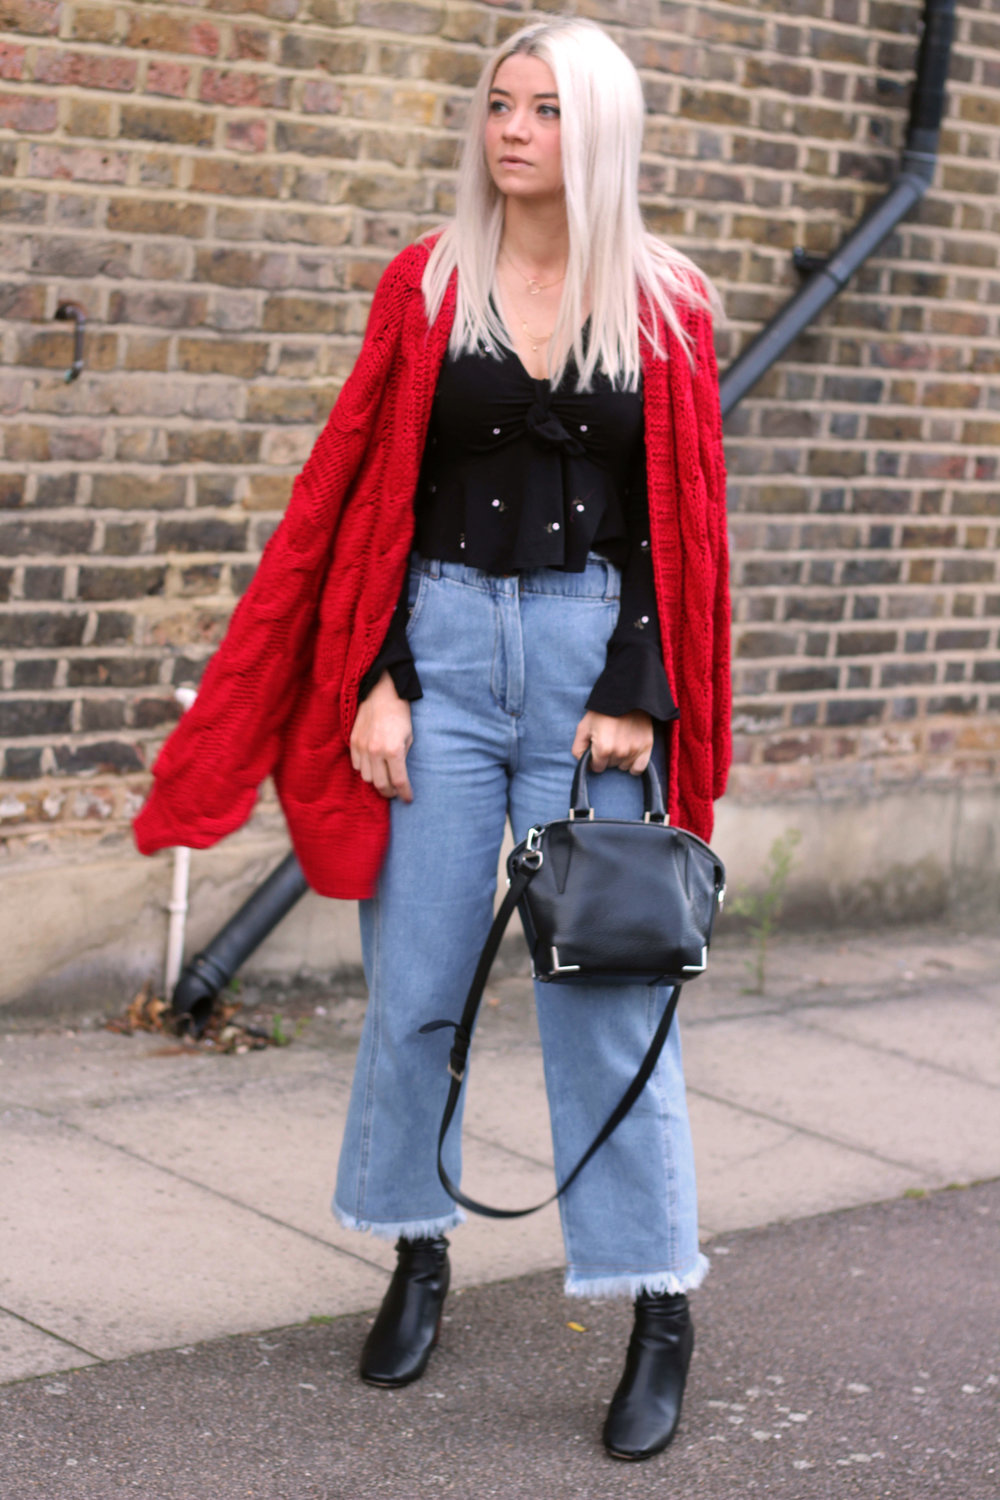 topshop jeans, next red cardigan, tie front ruffle top, ego boots, northern magpie, joey taylor 4